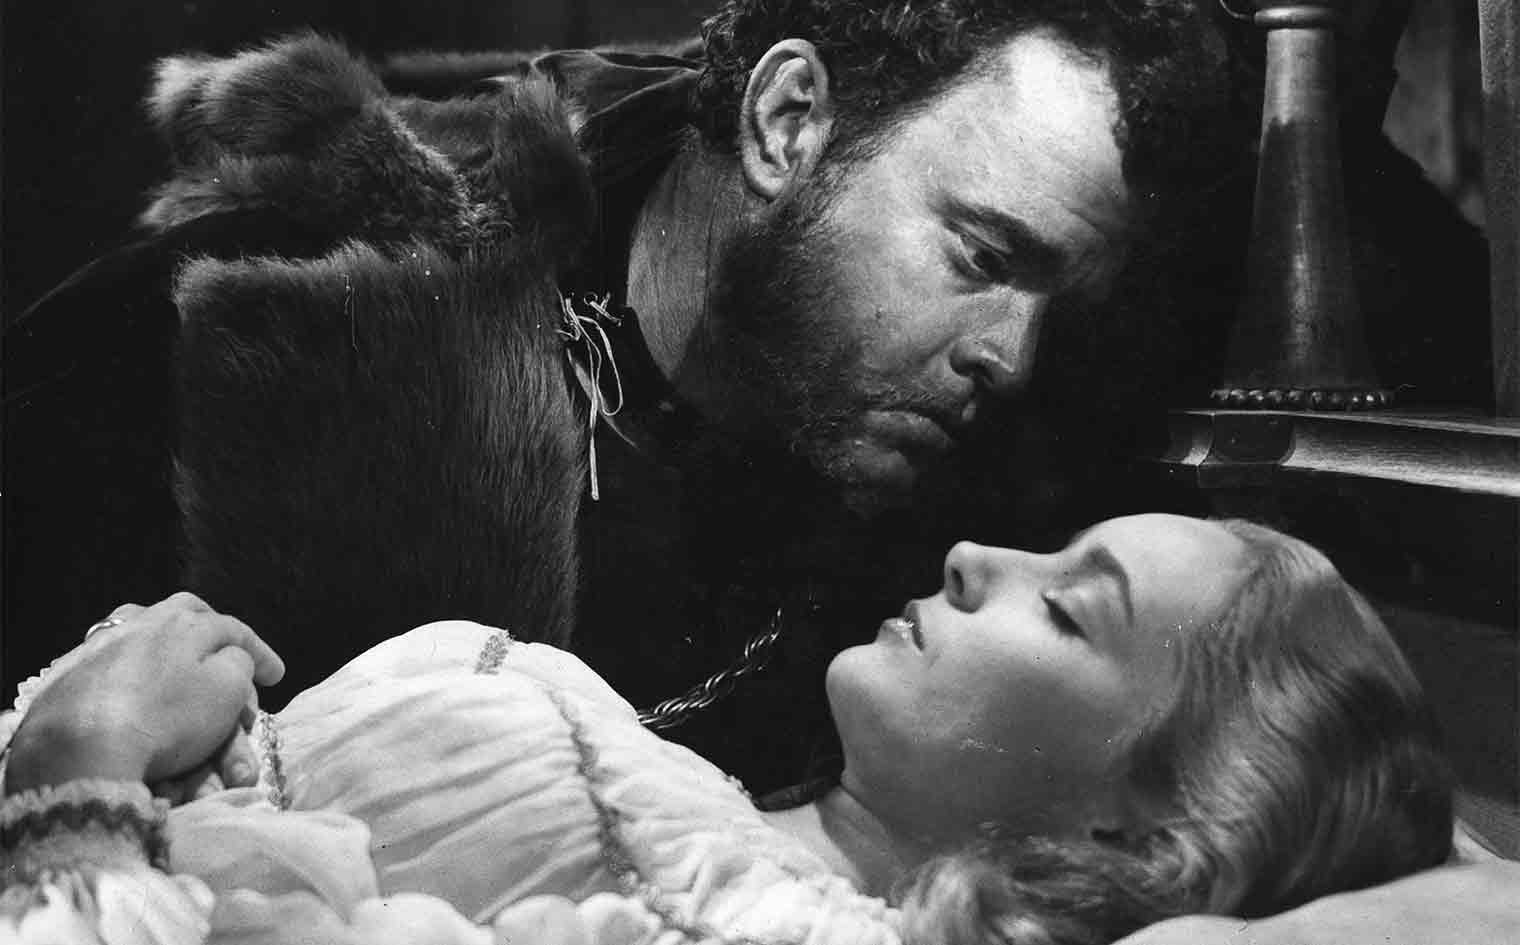 https://cinapse.co/criterion-review-orson-welles-othello-3c84bb8994ff